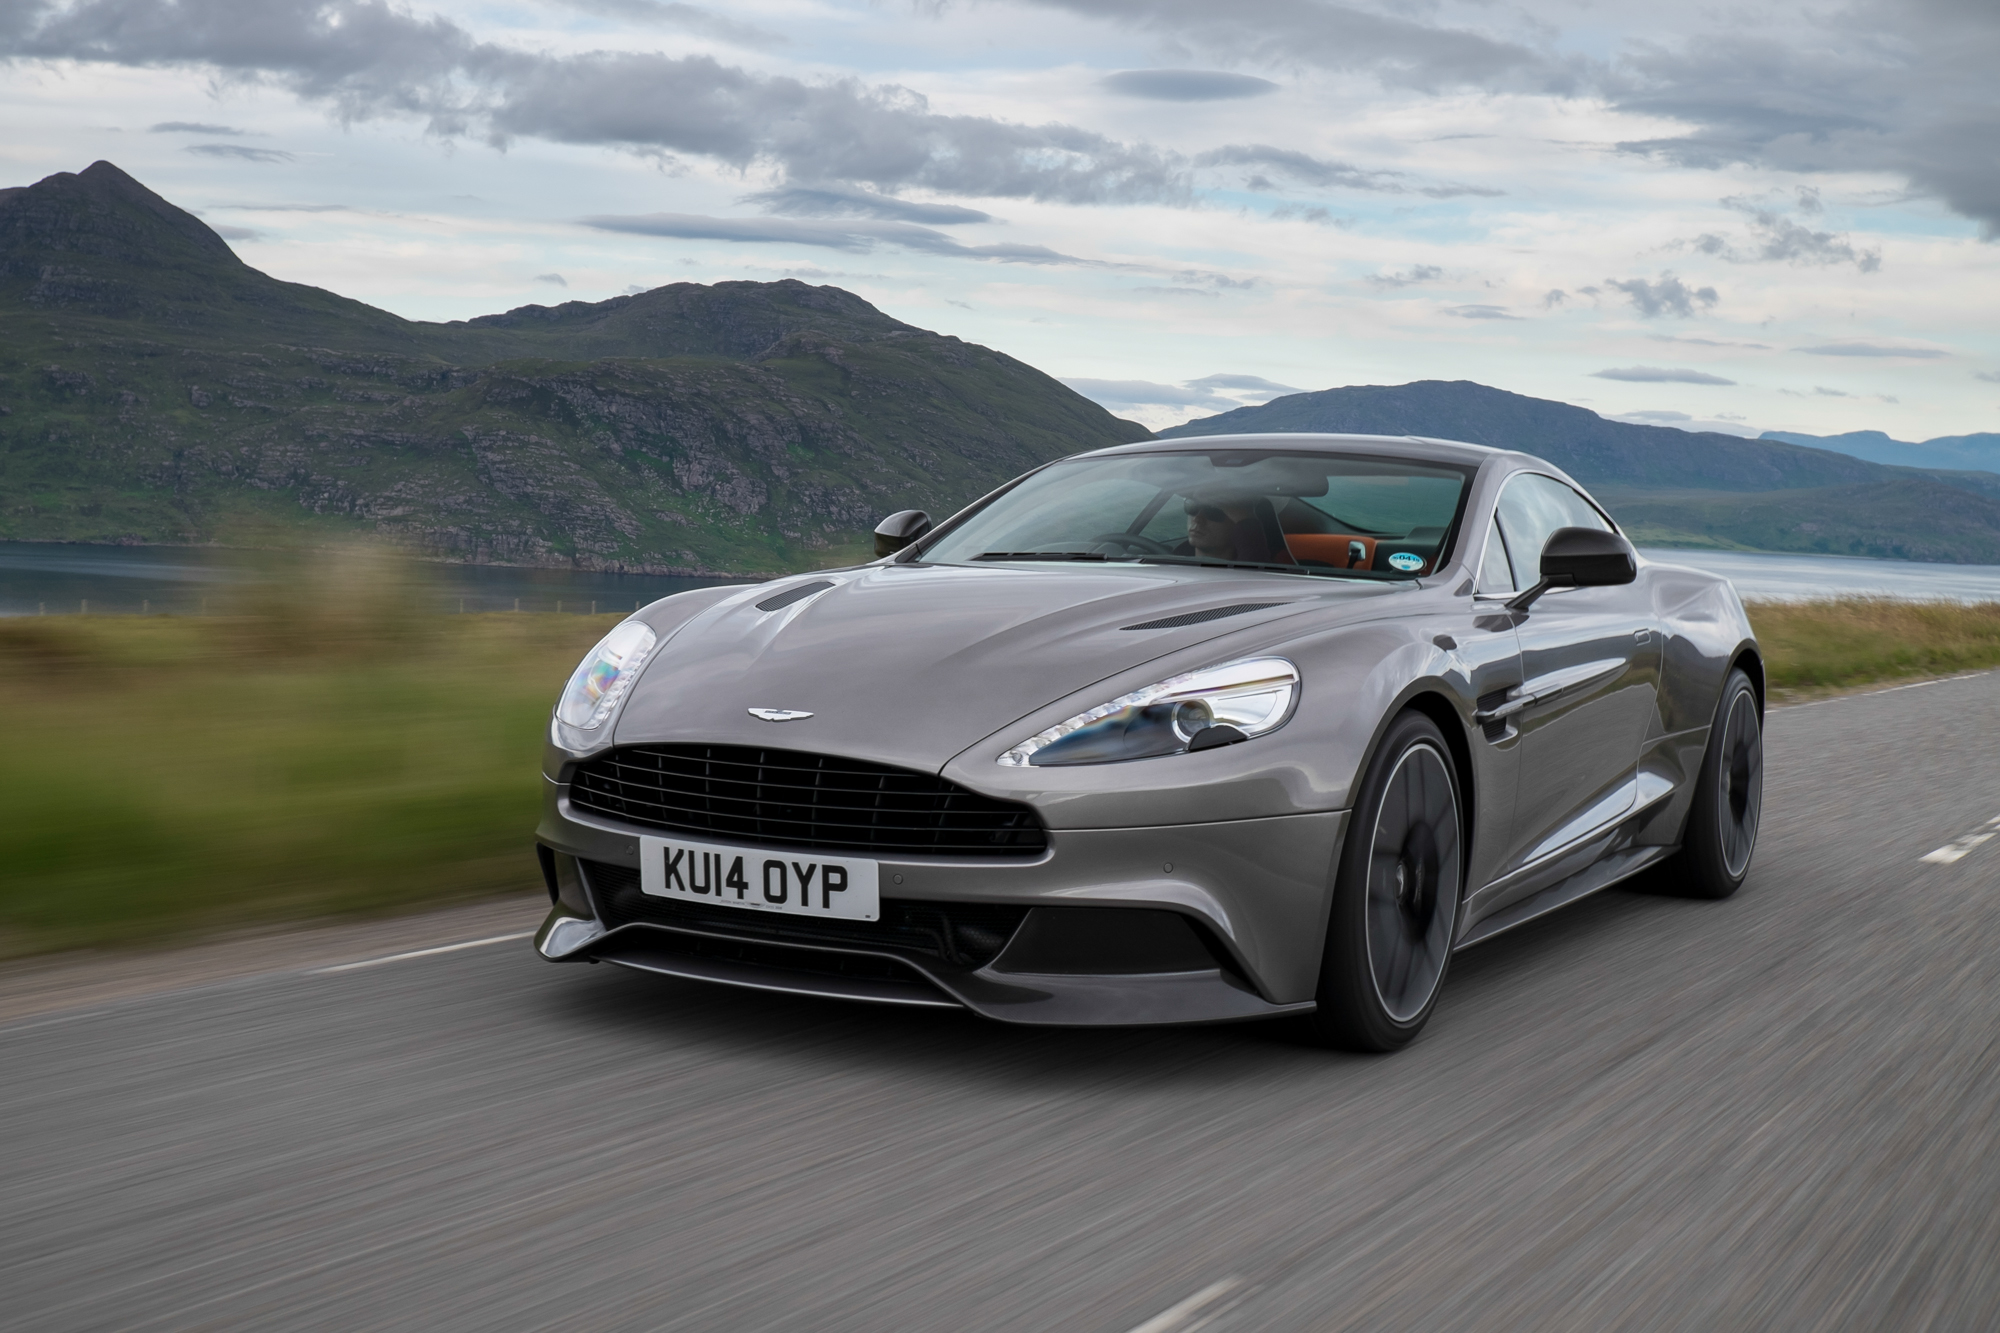 Popular 2015 Aston Martin Vanquish Review Ratings Specs Prices